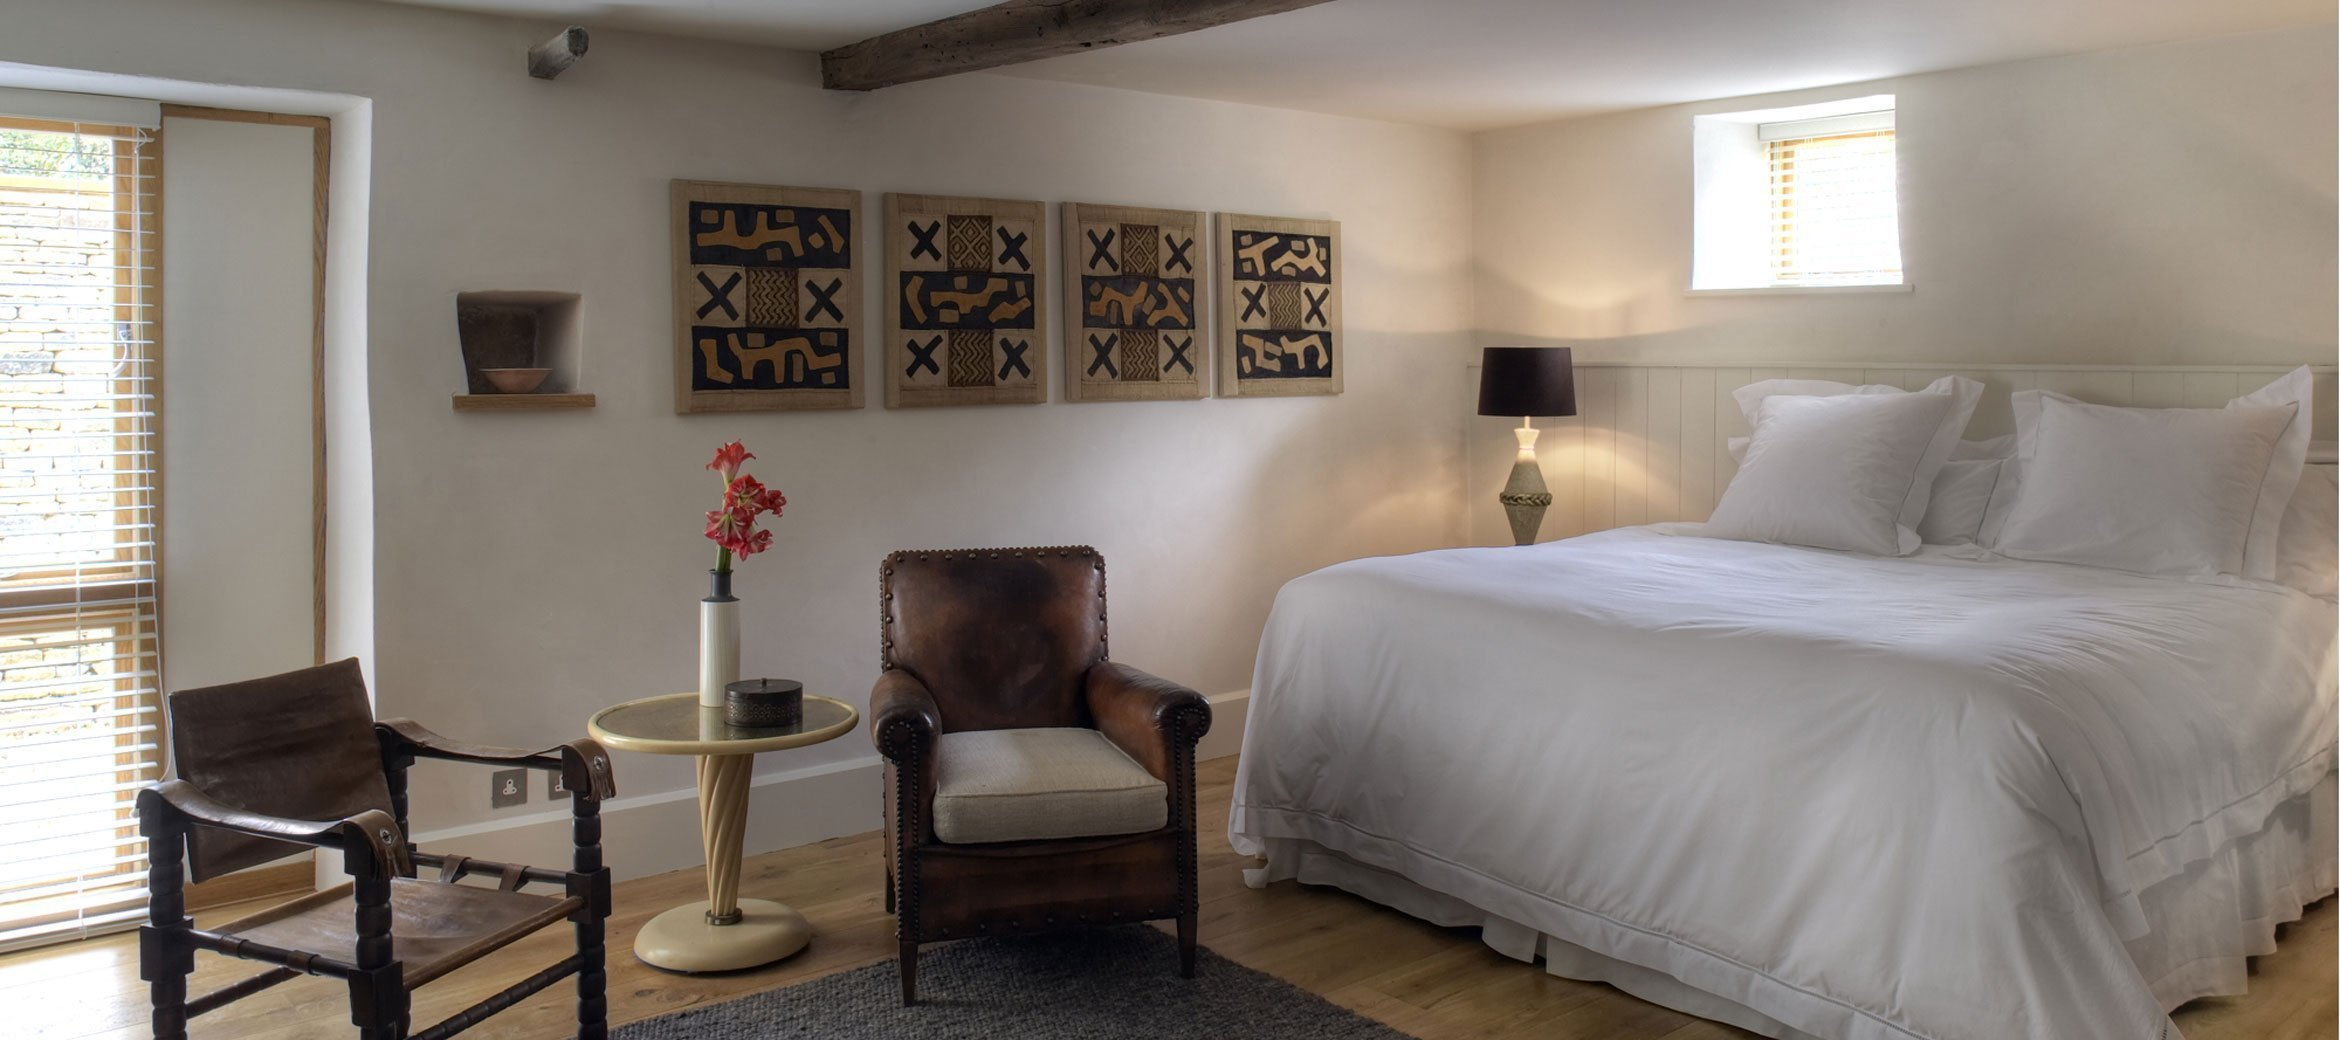 Temple-Guiting-Barn-Bedroom